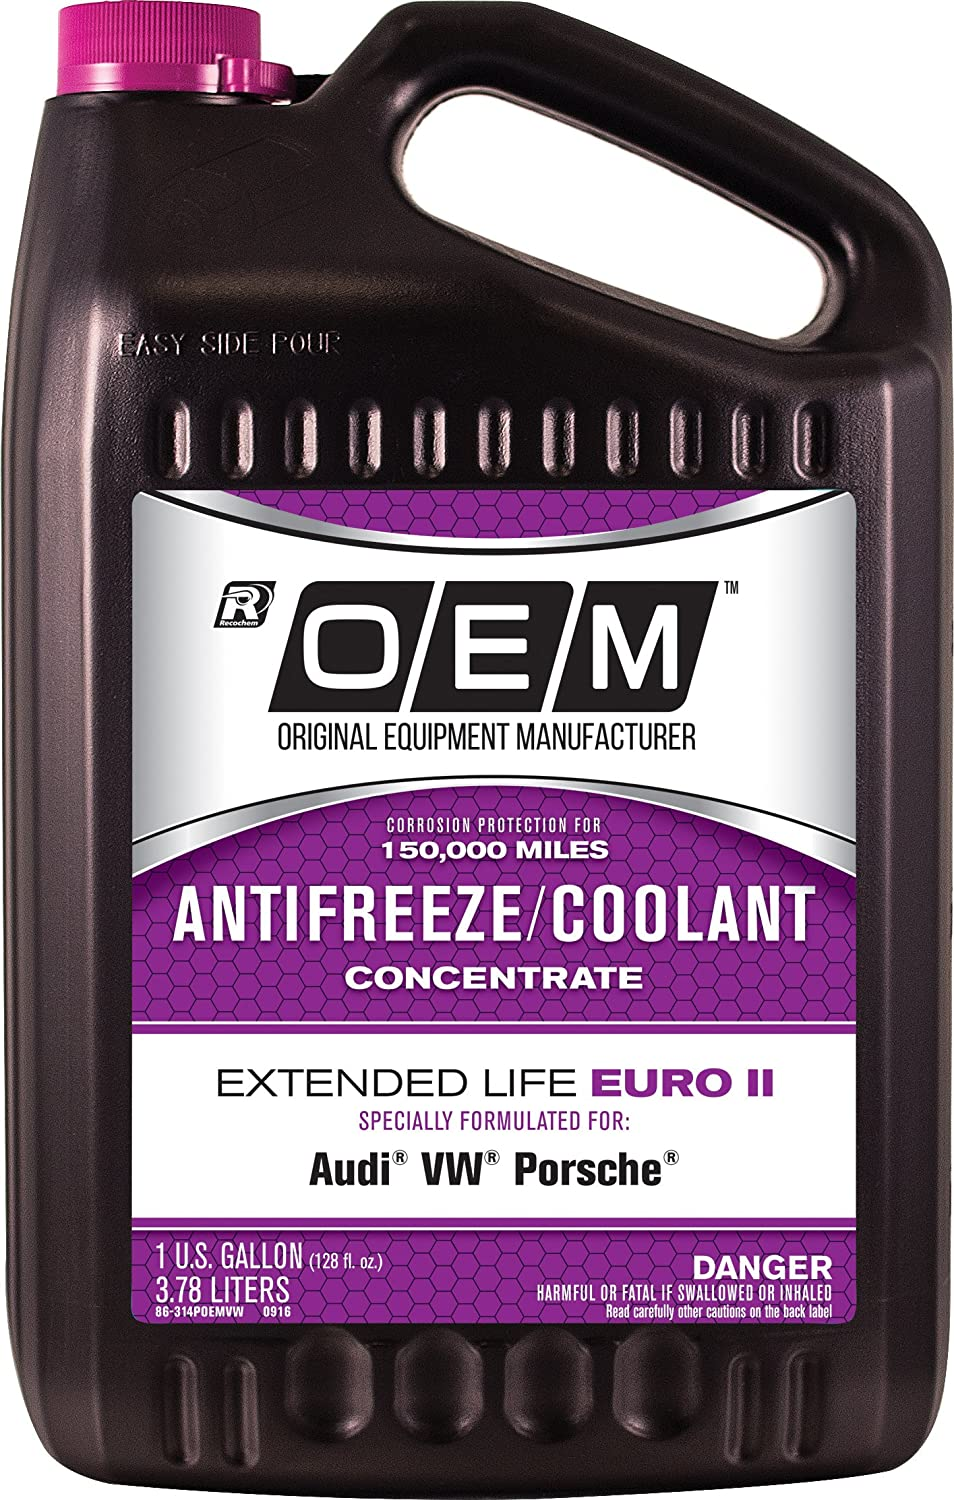 OEM 86-324POEMVW Premium Antifreeze 50/50 Extended Life-Euro II Pink, 128. Fluid_Ounces Recochem